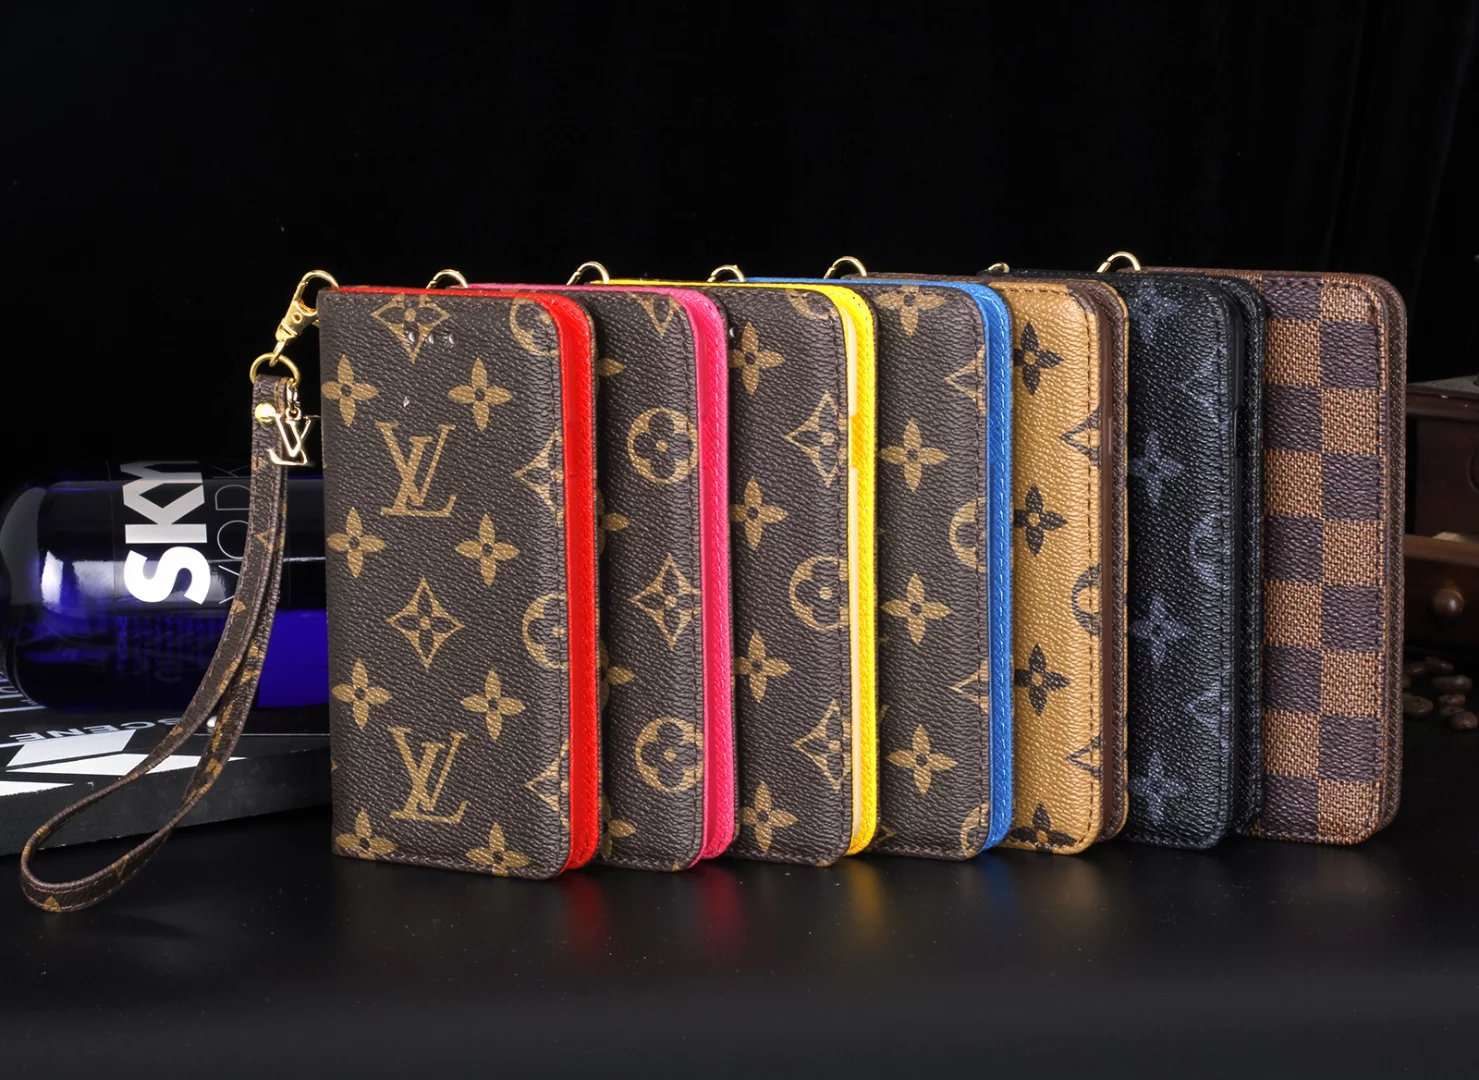 edle iphone hüllen mini iphone hülle Louis Vuitton iphone7 Plus hülle iphone hülle bunt smartphone ca7 7lbst gestalten handyhülle mit foto cover für iphone 7 Plus iphone 7 Plus hülle was7rdicht iphone 7 Plus flip hülle